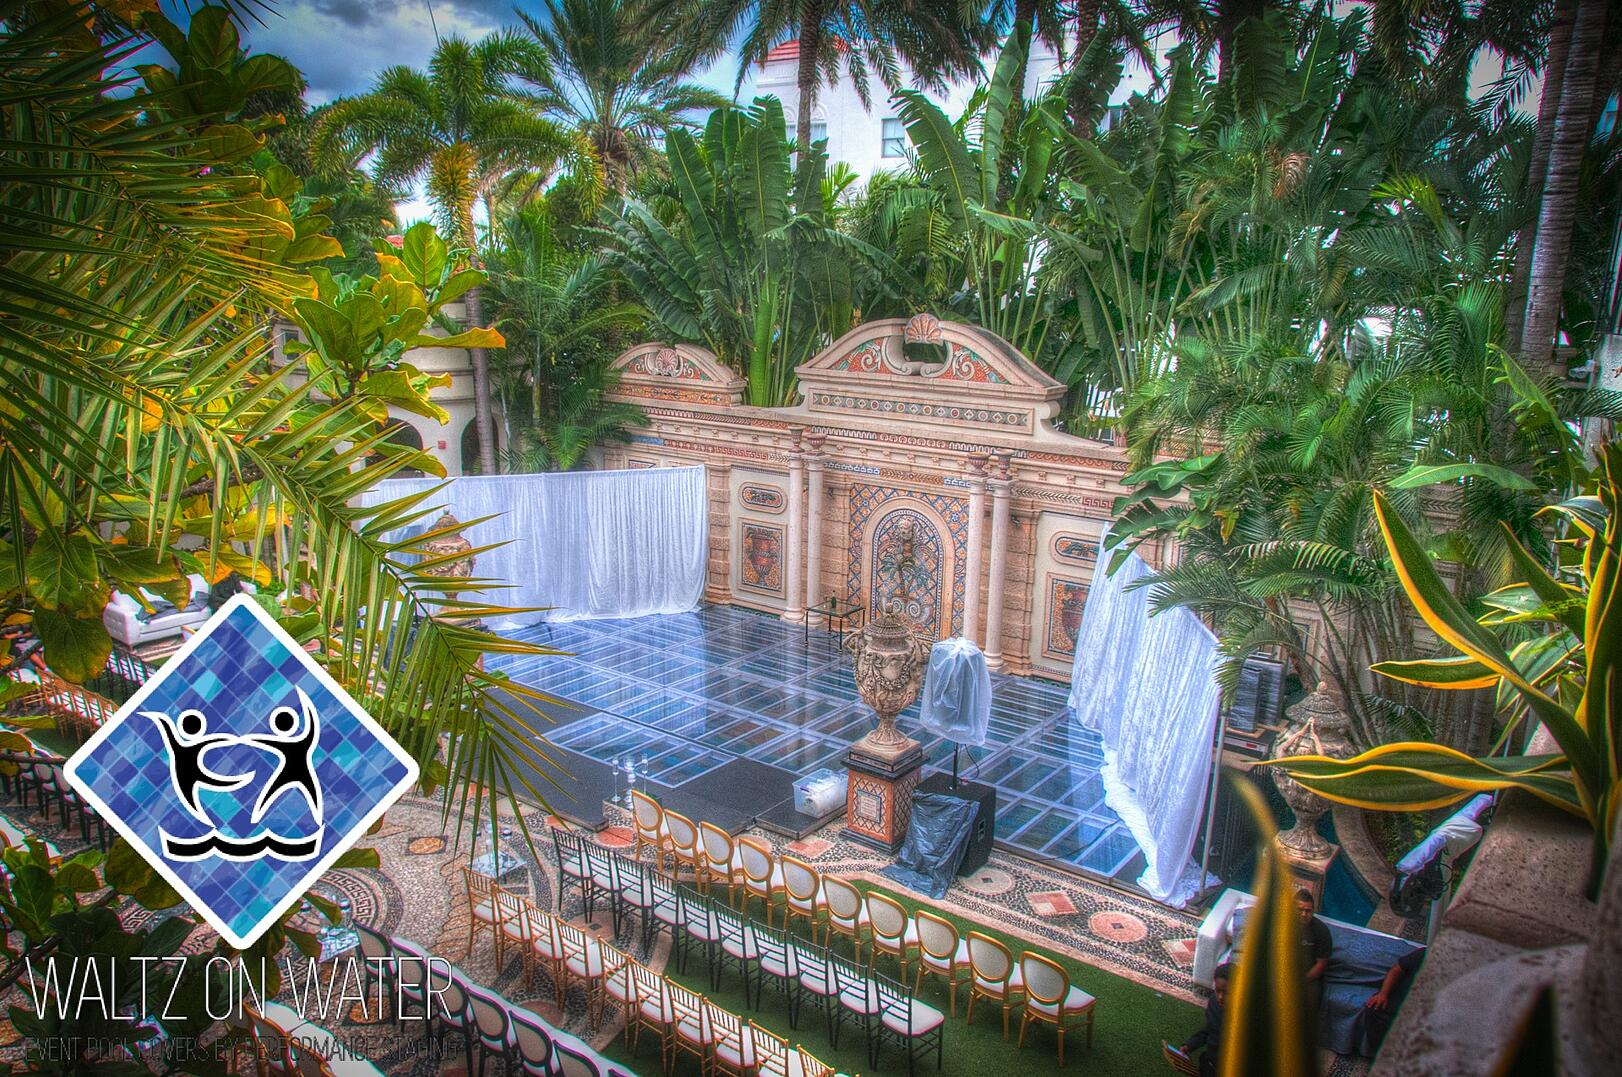 Waltz on Water by Performance Staging Pool cover at the former Versace Mansion, Villa Casa Casuarina